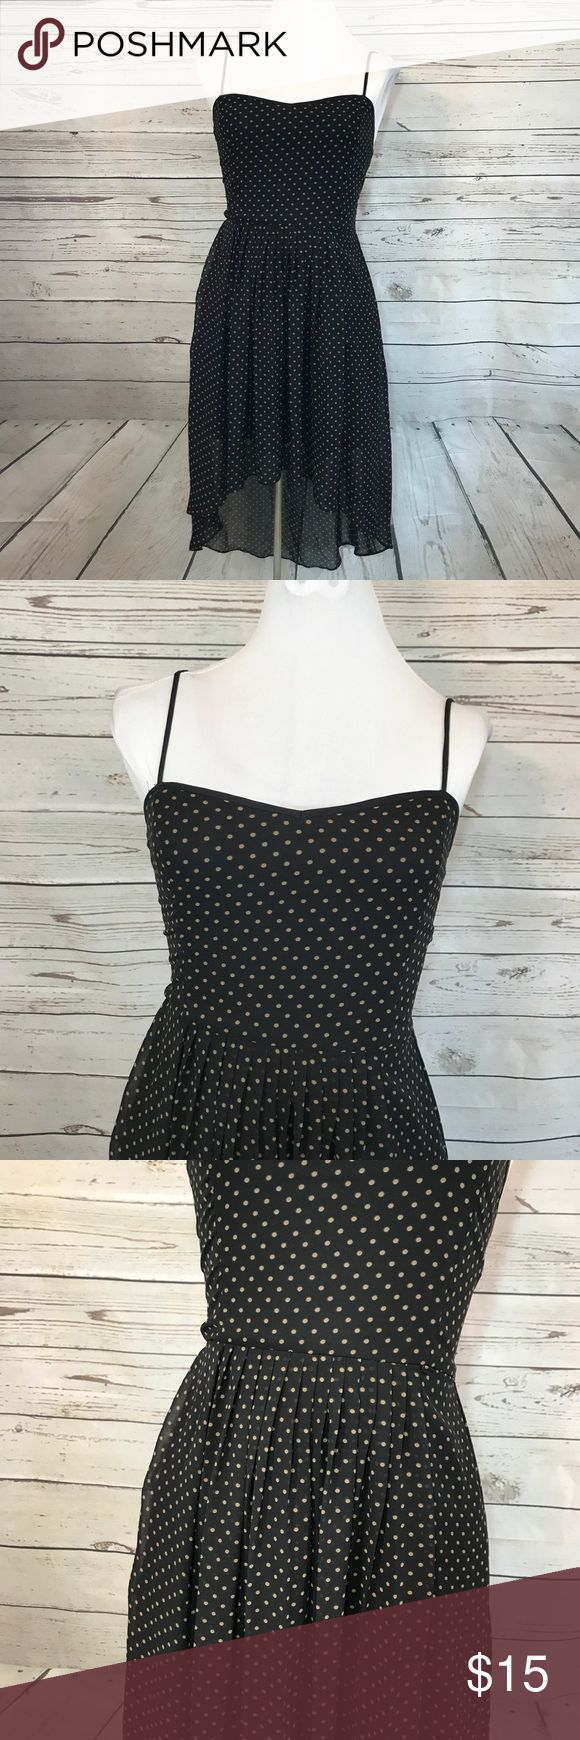 """Forever 21 black tank Polka Dot high low dress Fun Forever 21 black dress with tan polka dot mini dress. High low sheer bottom. Size Small. Adjustable Straps. Stretchy back.    armpit: approx.  14"""" waist: approx.  12"""" length: approx. 34"""" (longer in the back) Forever 21 Dresses Asymmetrical"""